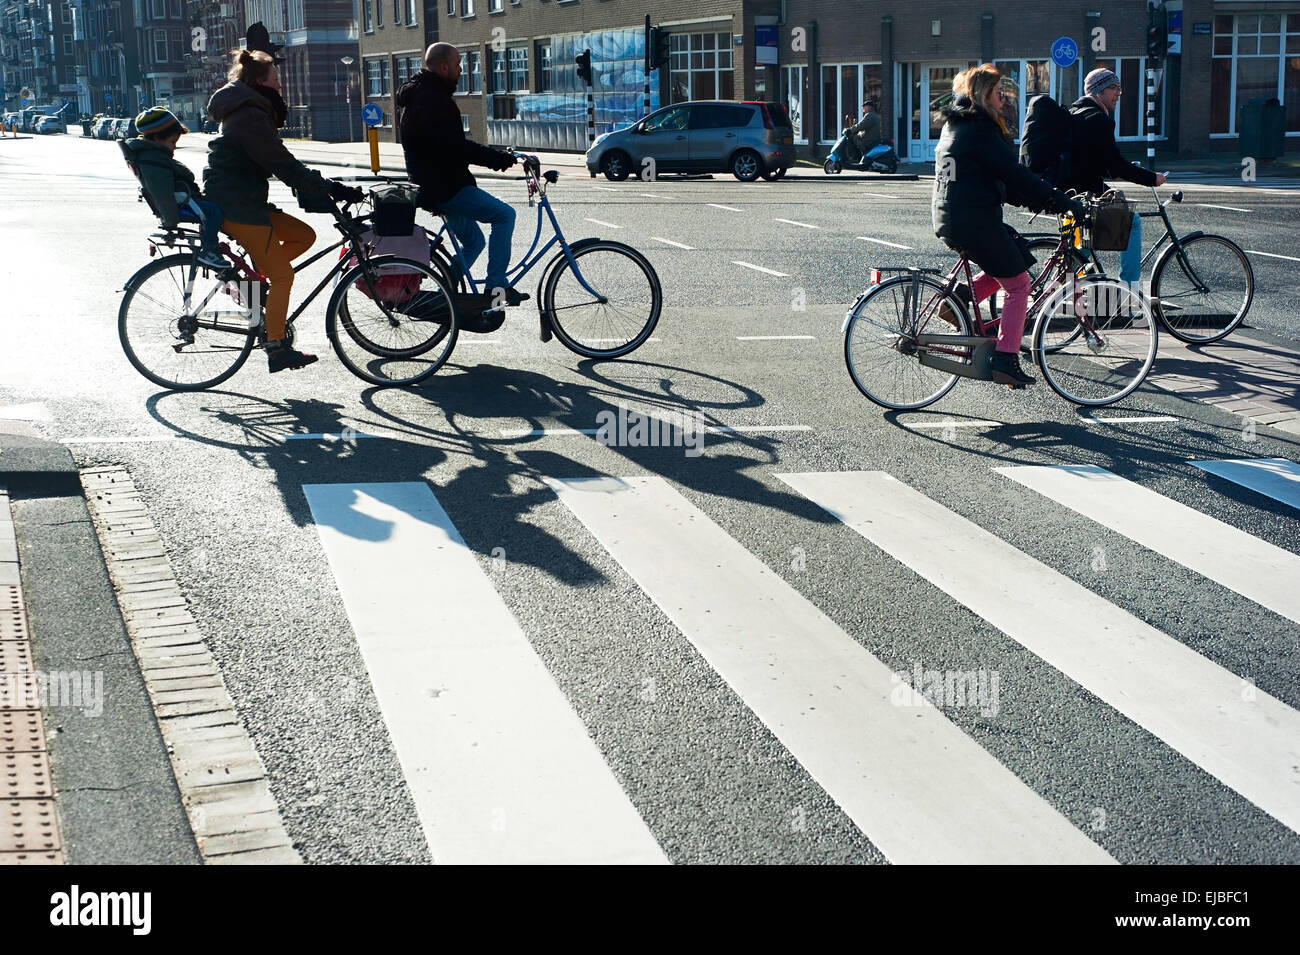 Bicyclists Amsterdam - Stock Image